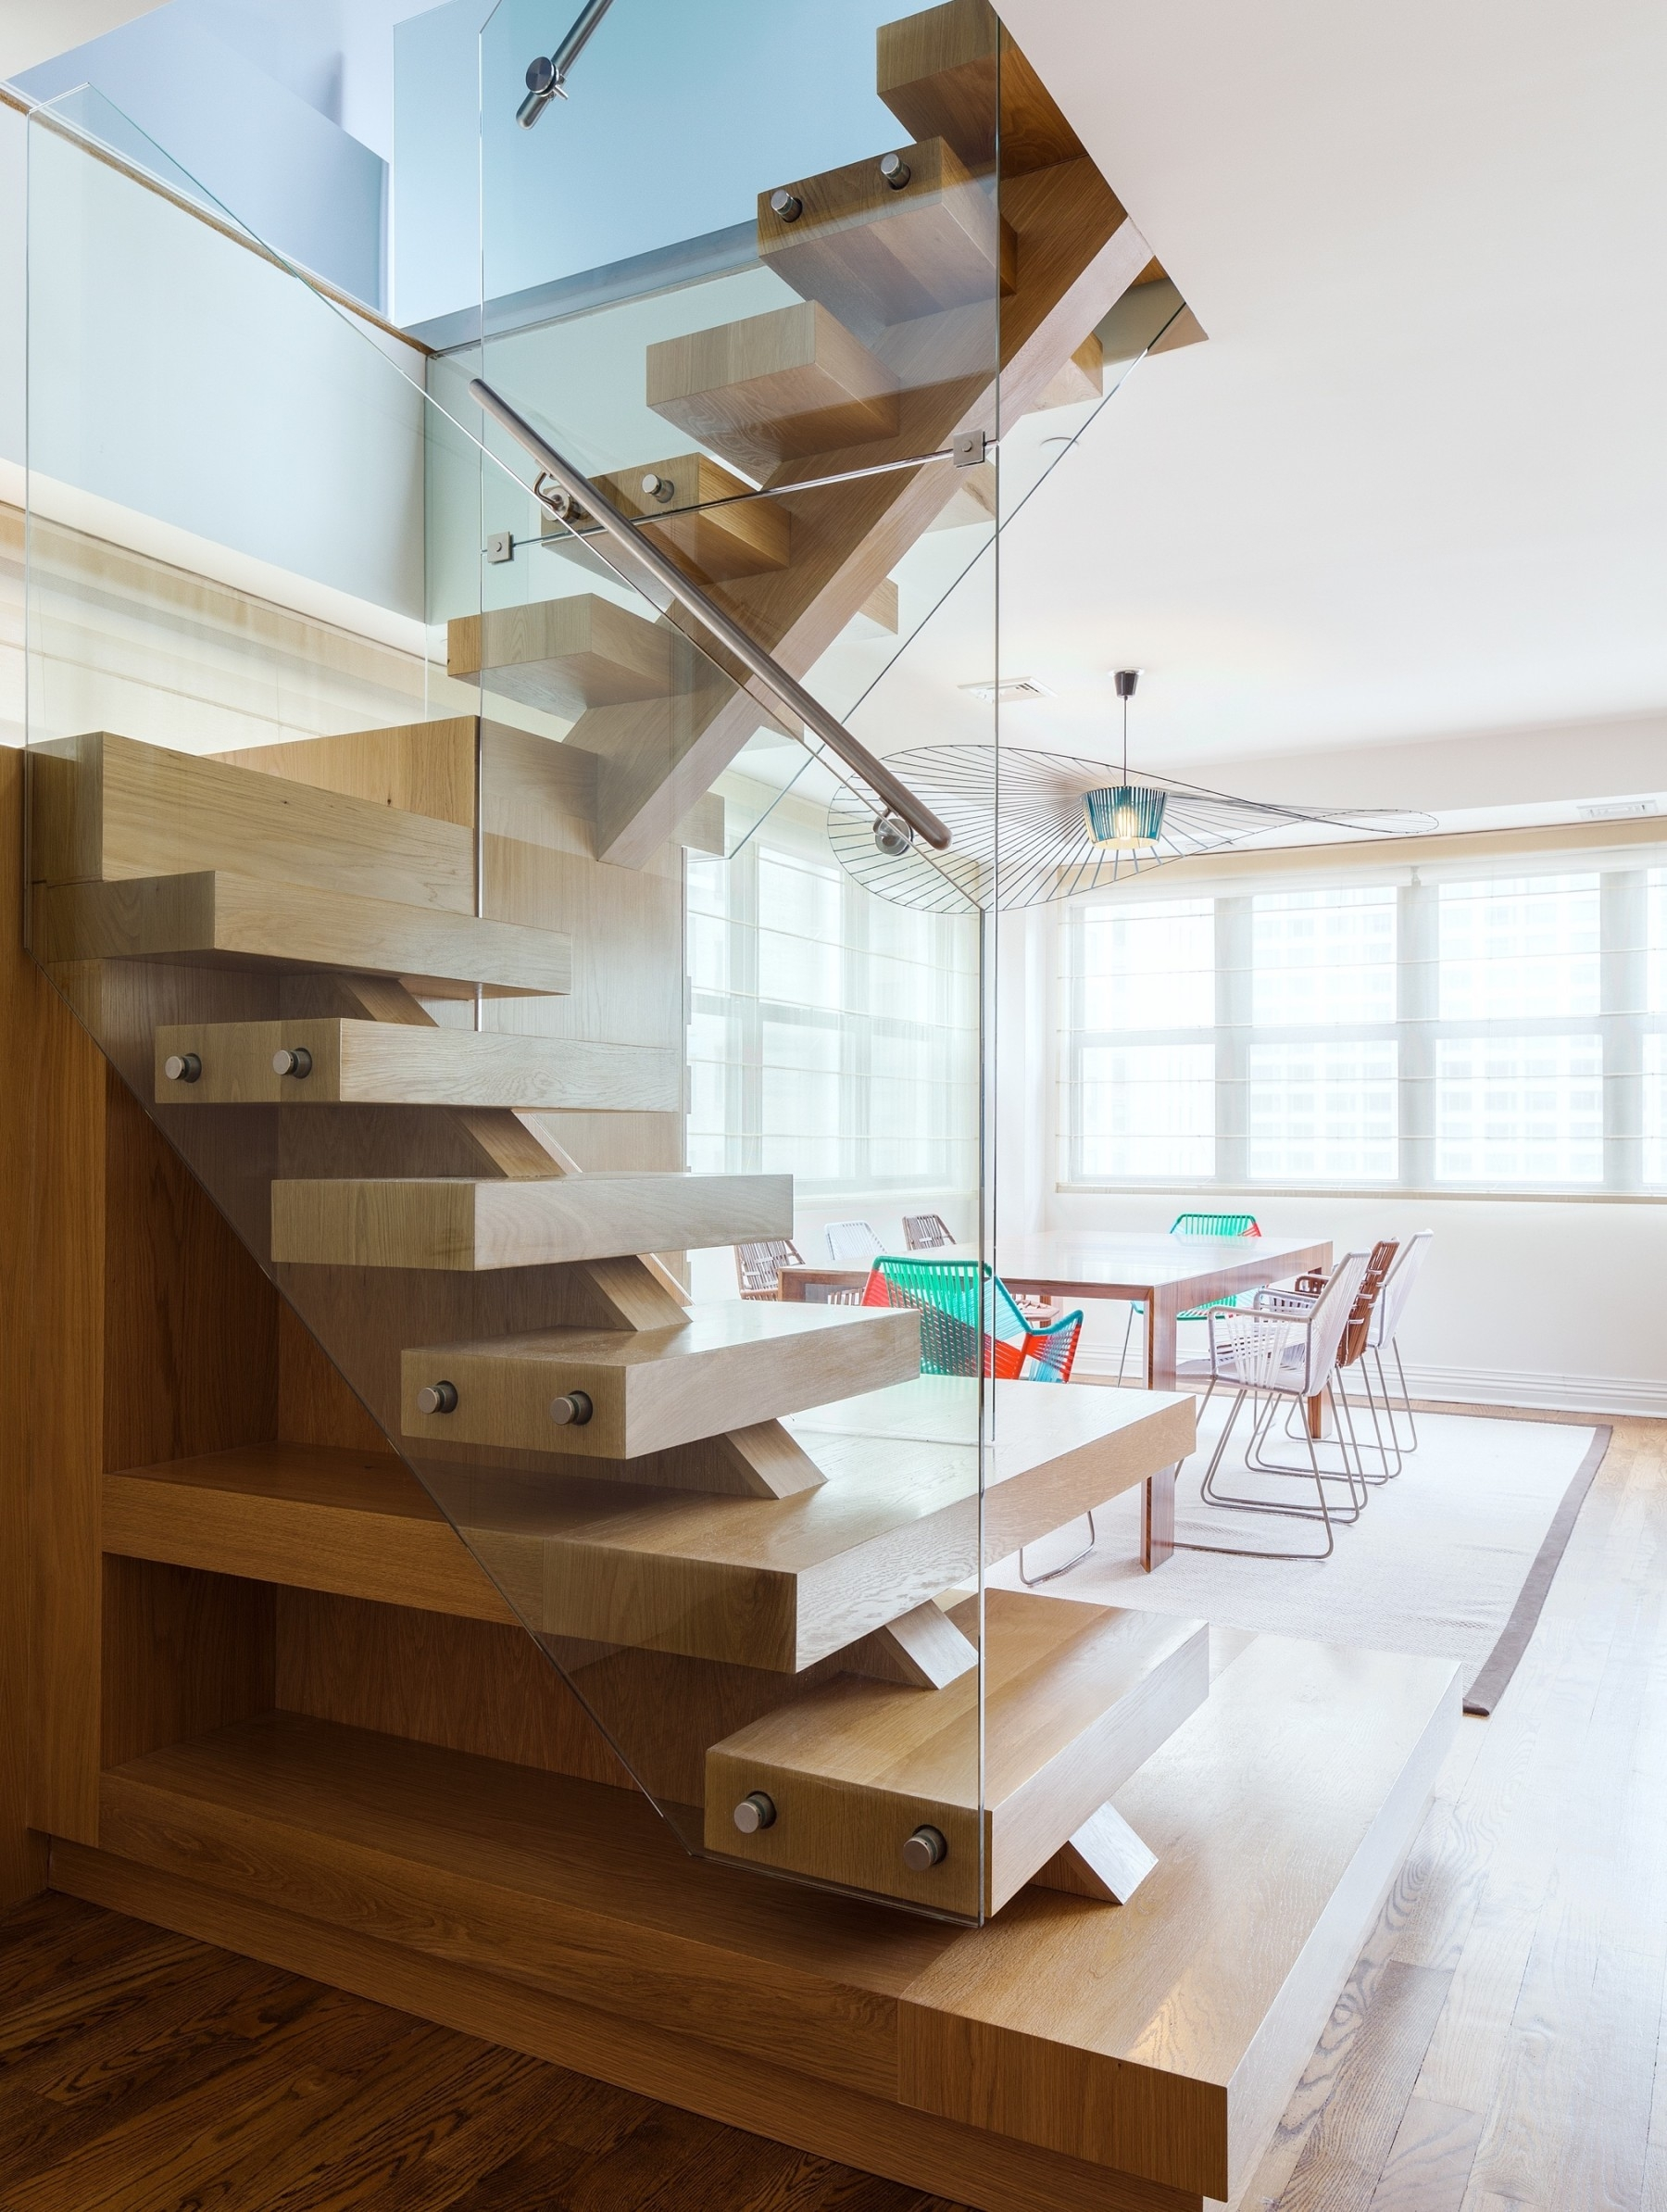 Spiral Staircase Alternatives For Your Nyc Duplex Renovation | Metal Spiral Staircase Cost | Iron | Deck | Stainless Steel | Stair Parts | Staircase Kits